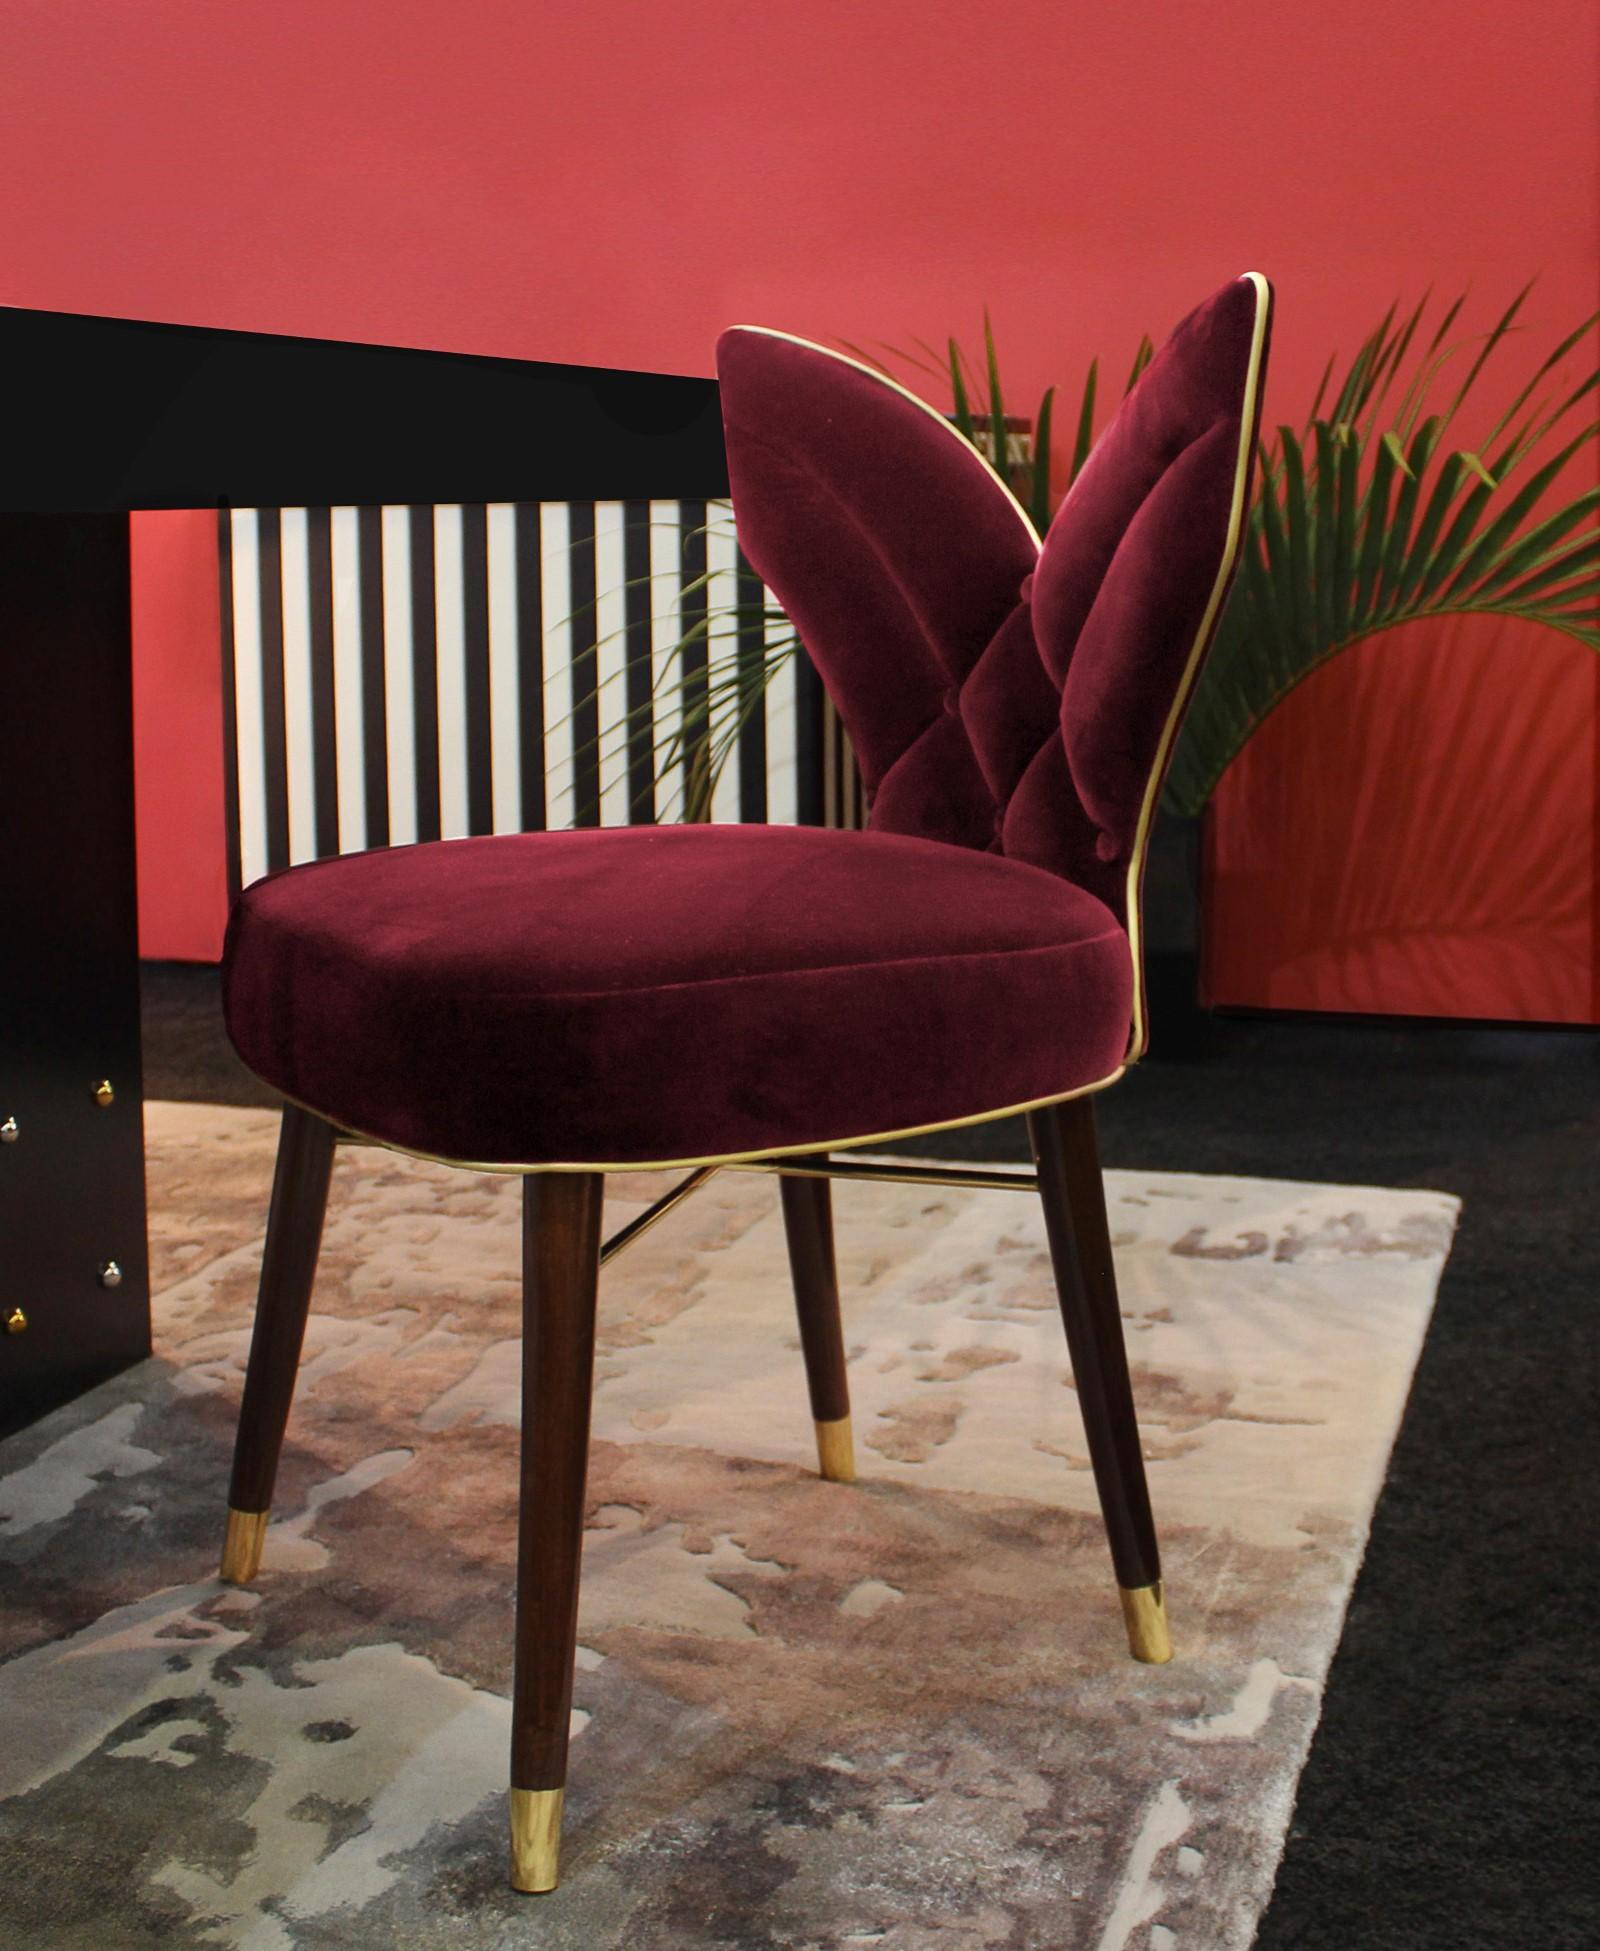 luna dining chair AD SHOW NEW YORK